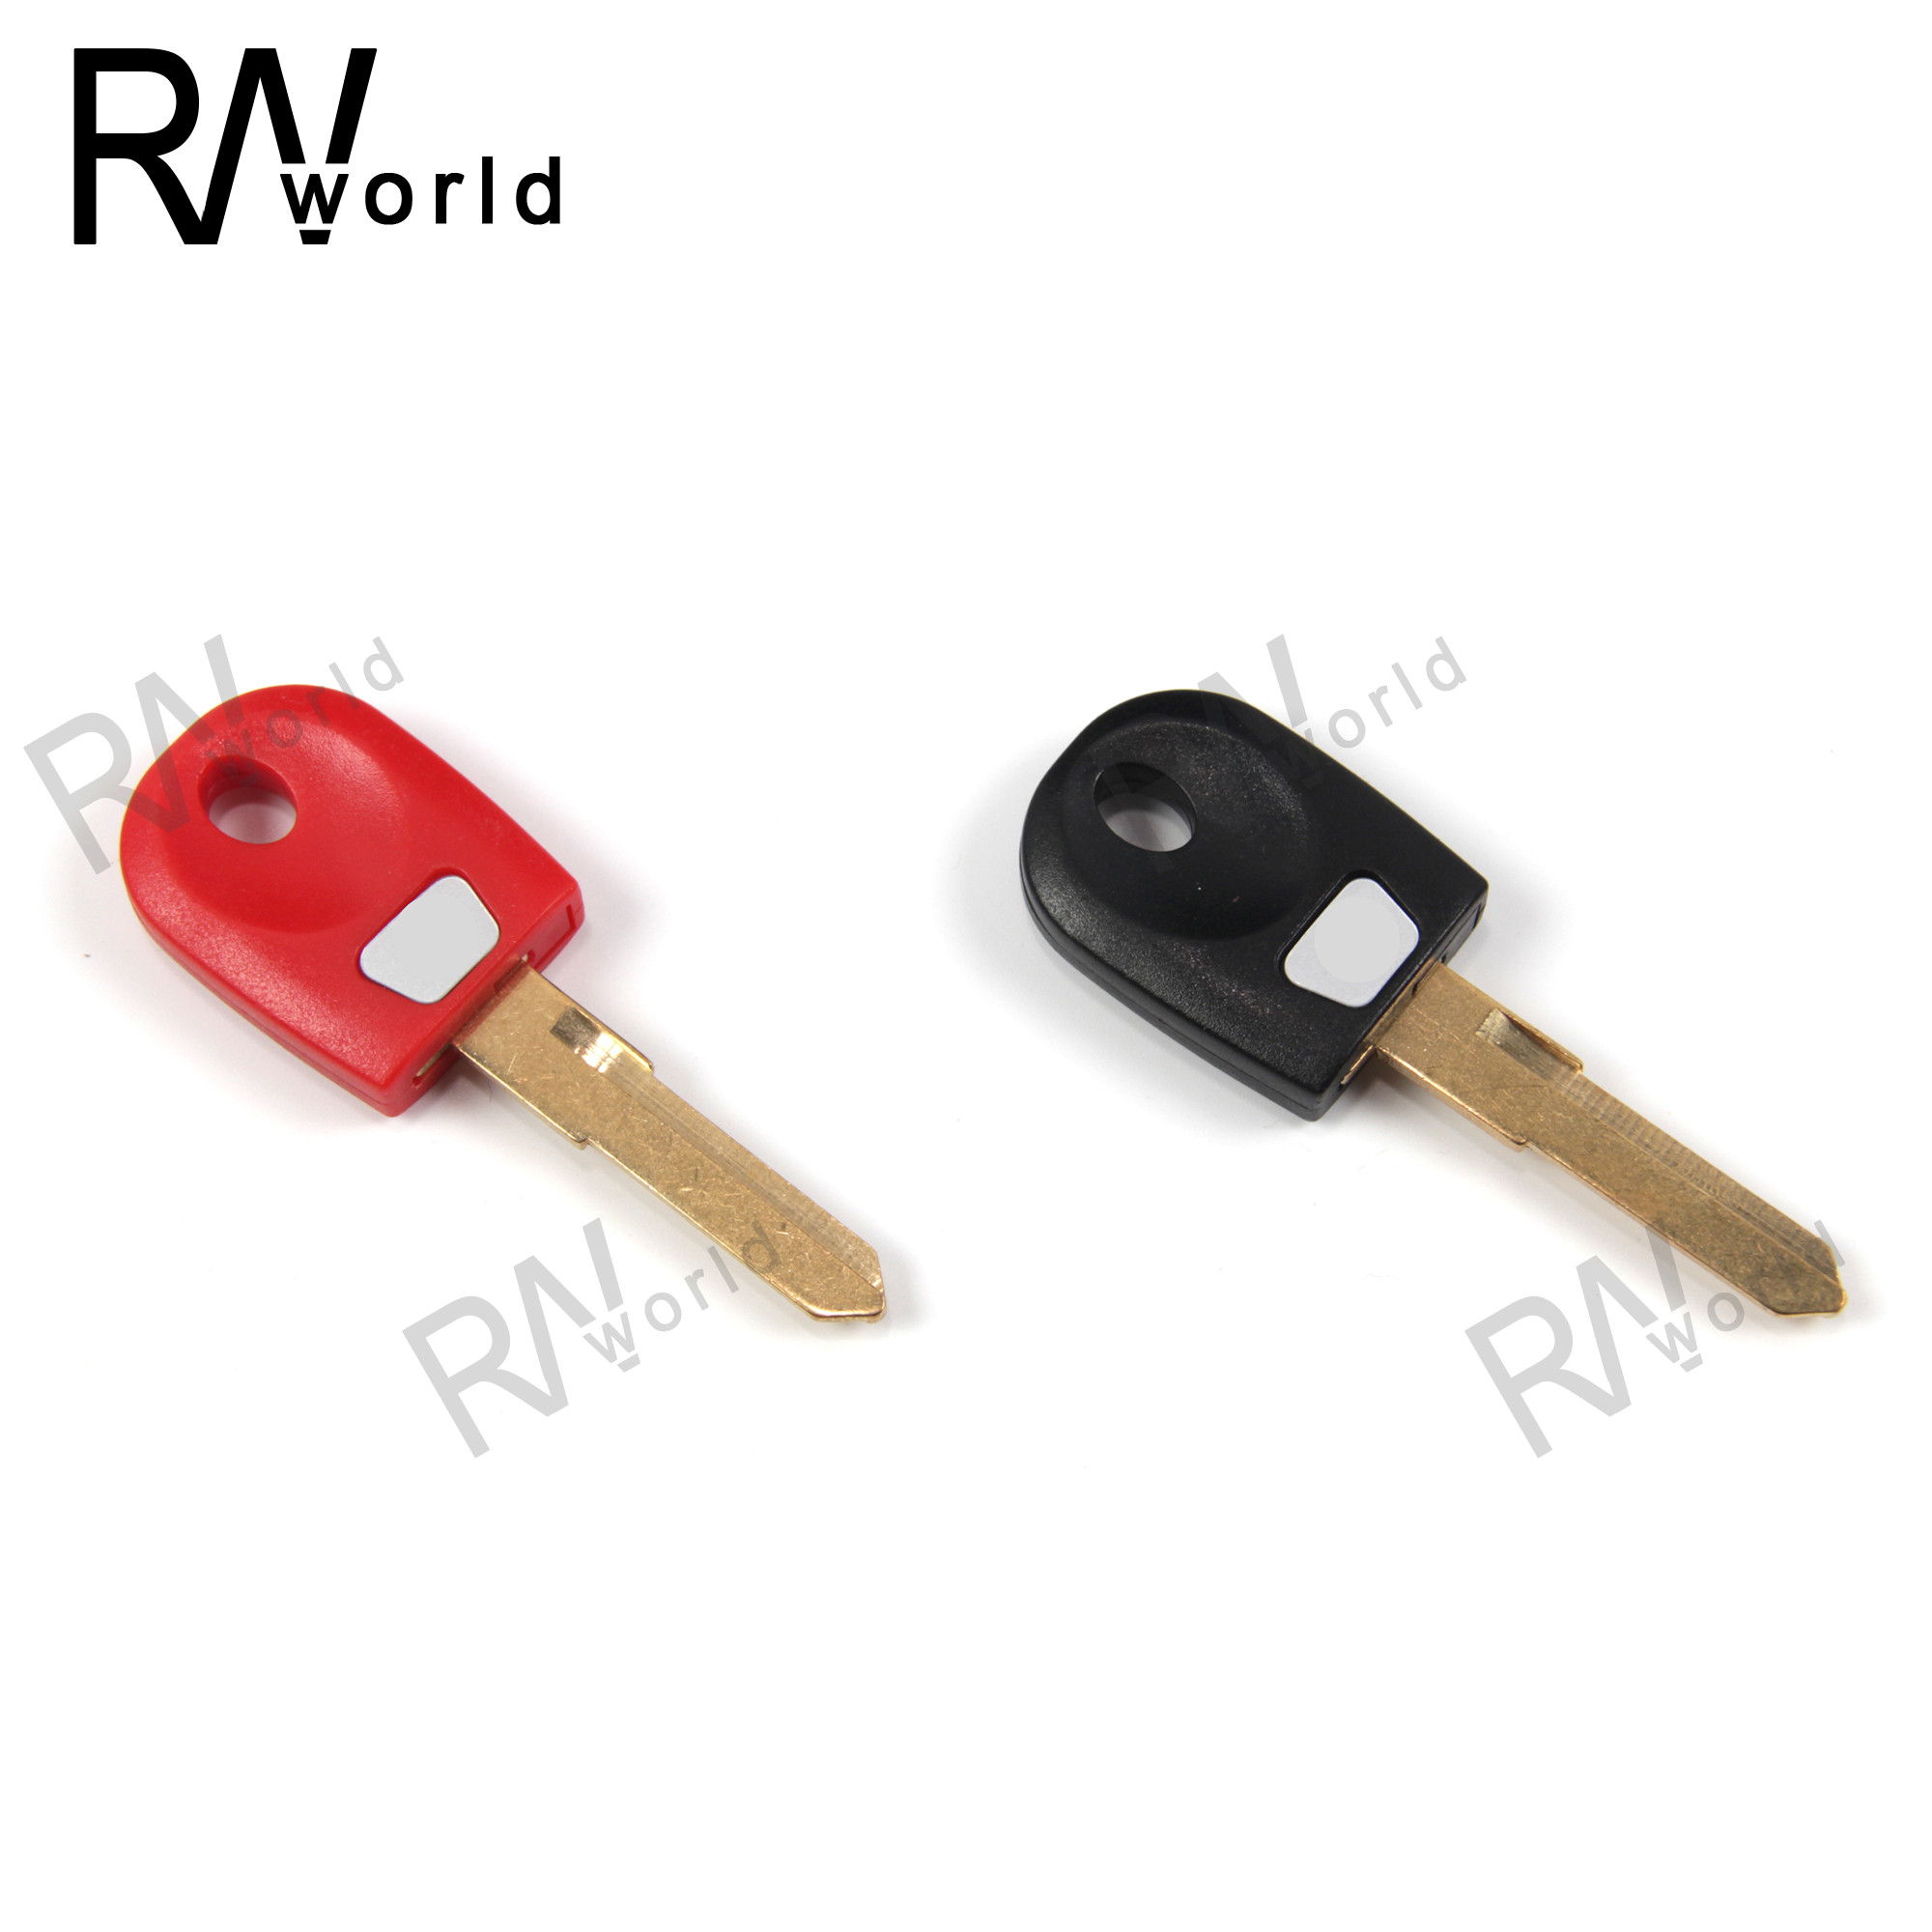 Motorcycle Uncut Blade Blank Key Embryo For Ducati 999 999R 999S 1098 1000 DS Motorcycle Replacement Accessories